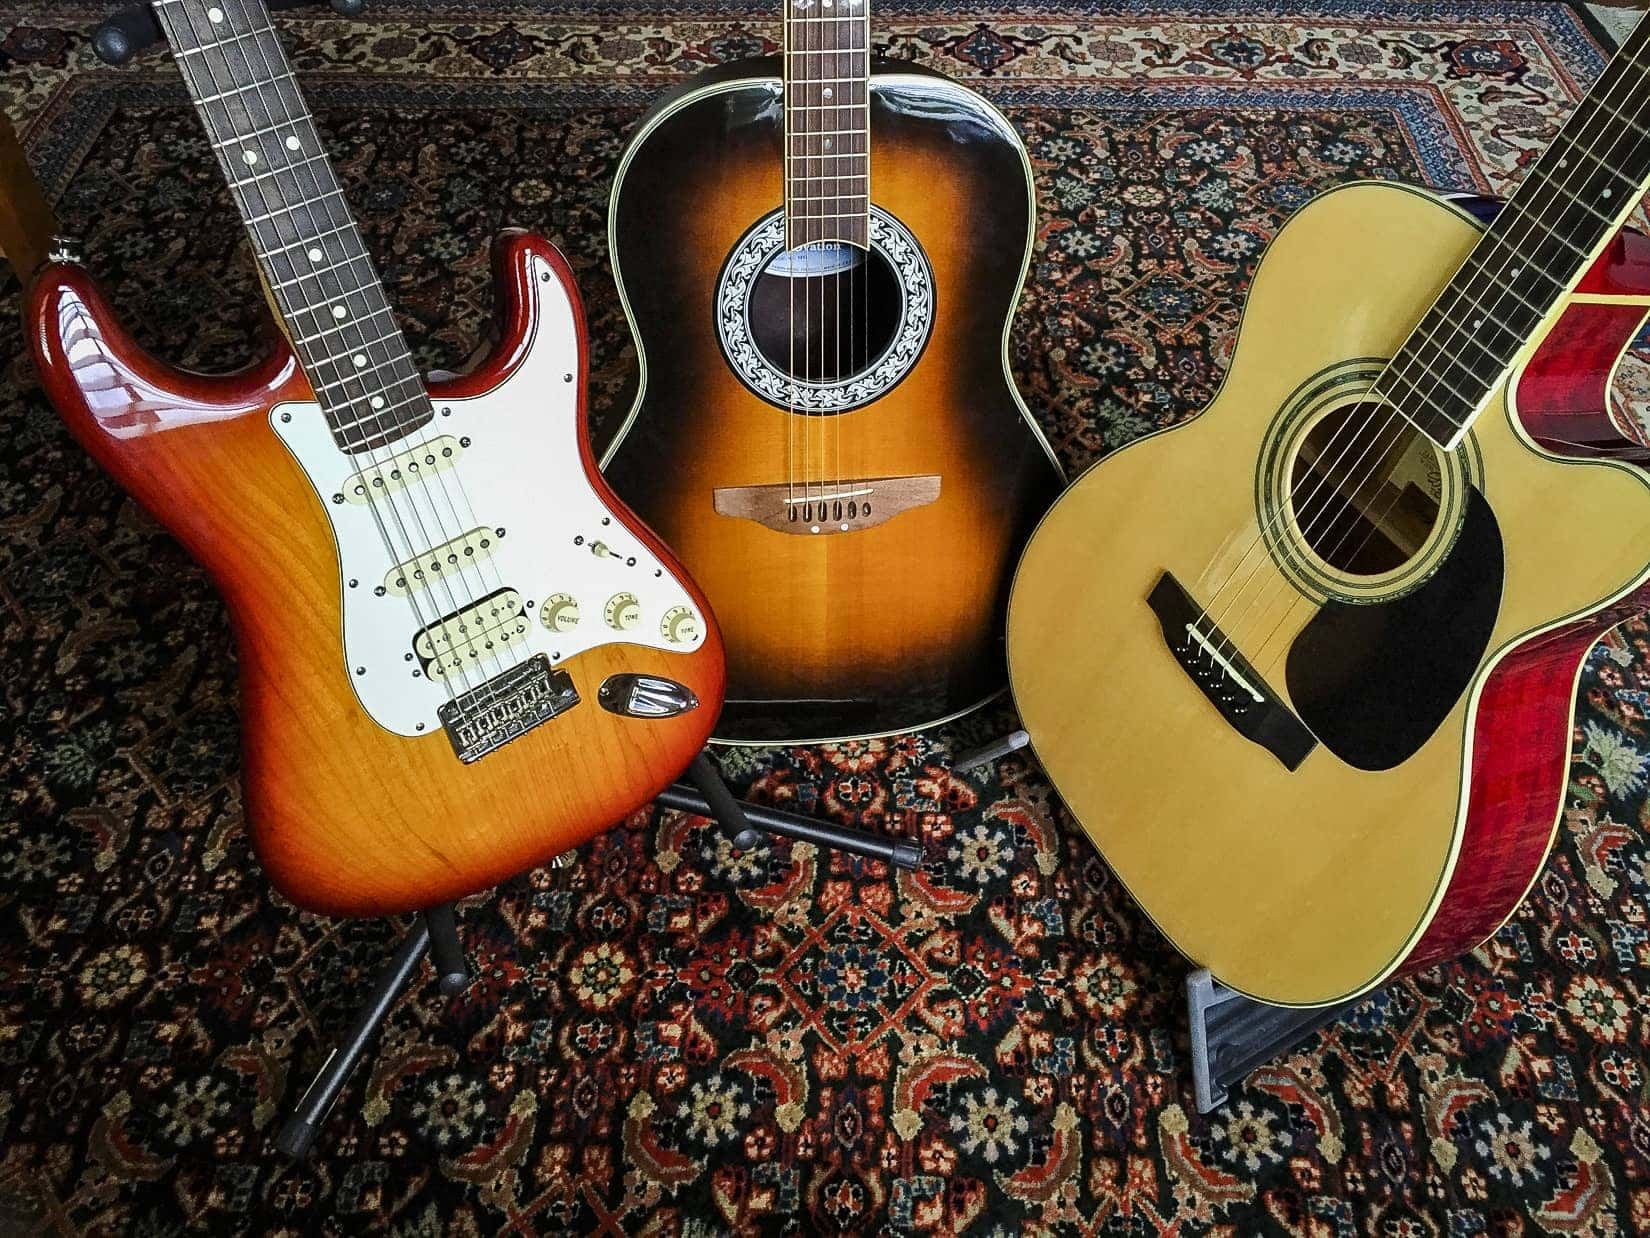 These guitars